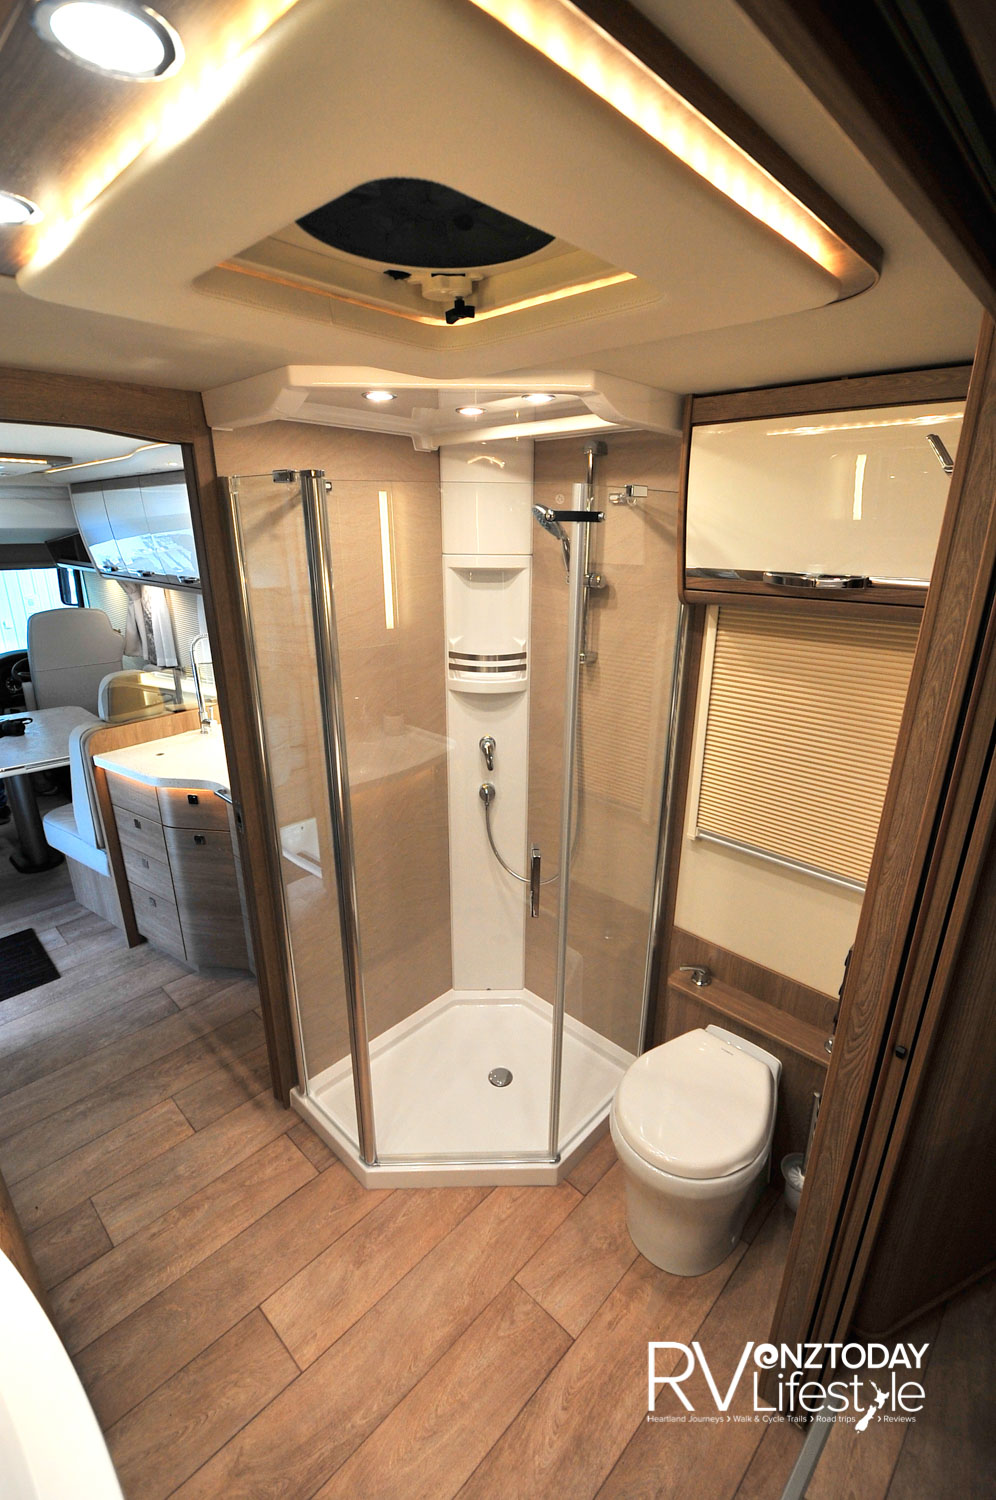 Toilet suite sits beside the large shower box, roof vent above, opening window, there is an extendable shower-top head behind the sink, for easy cleaning of the unit I presume